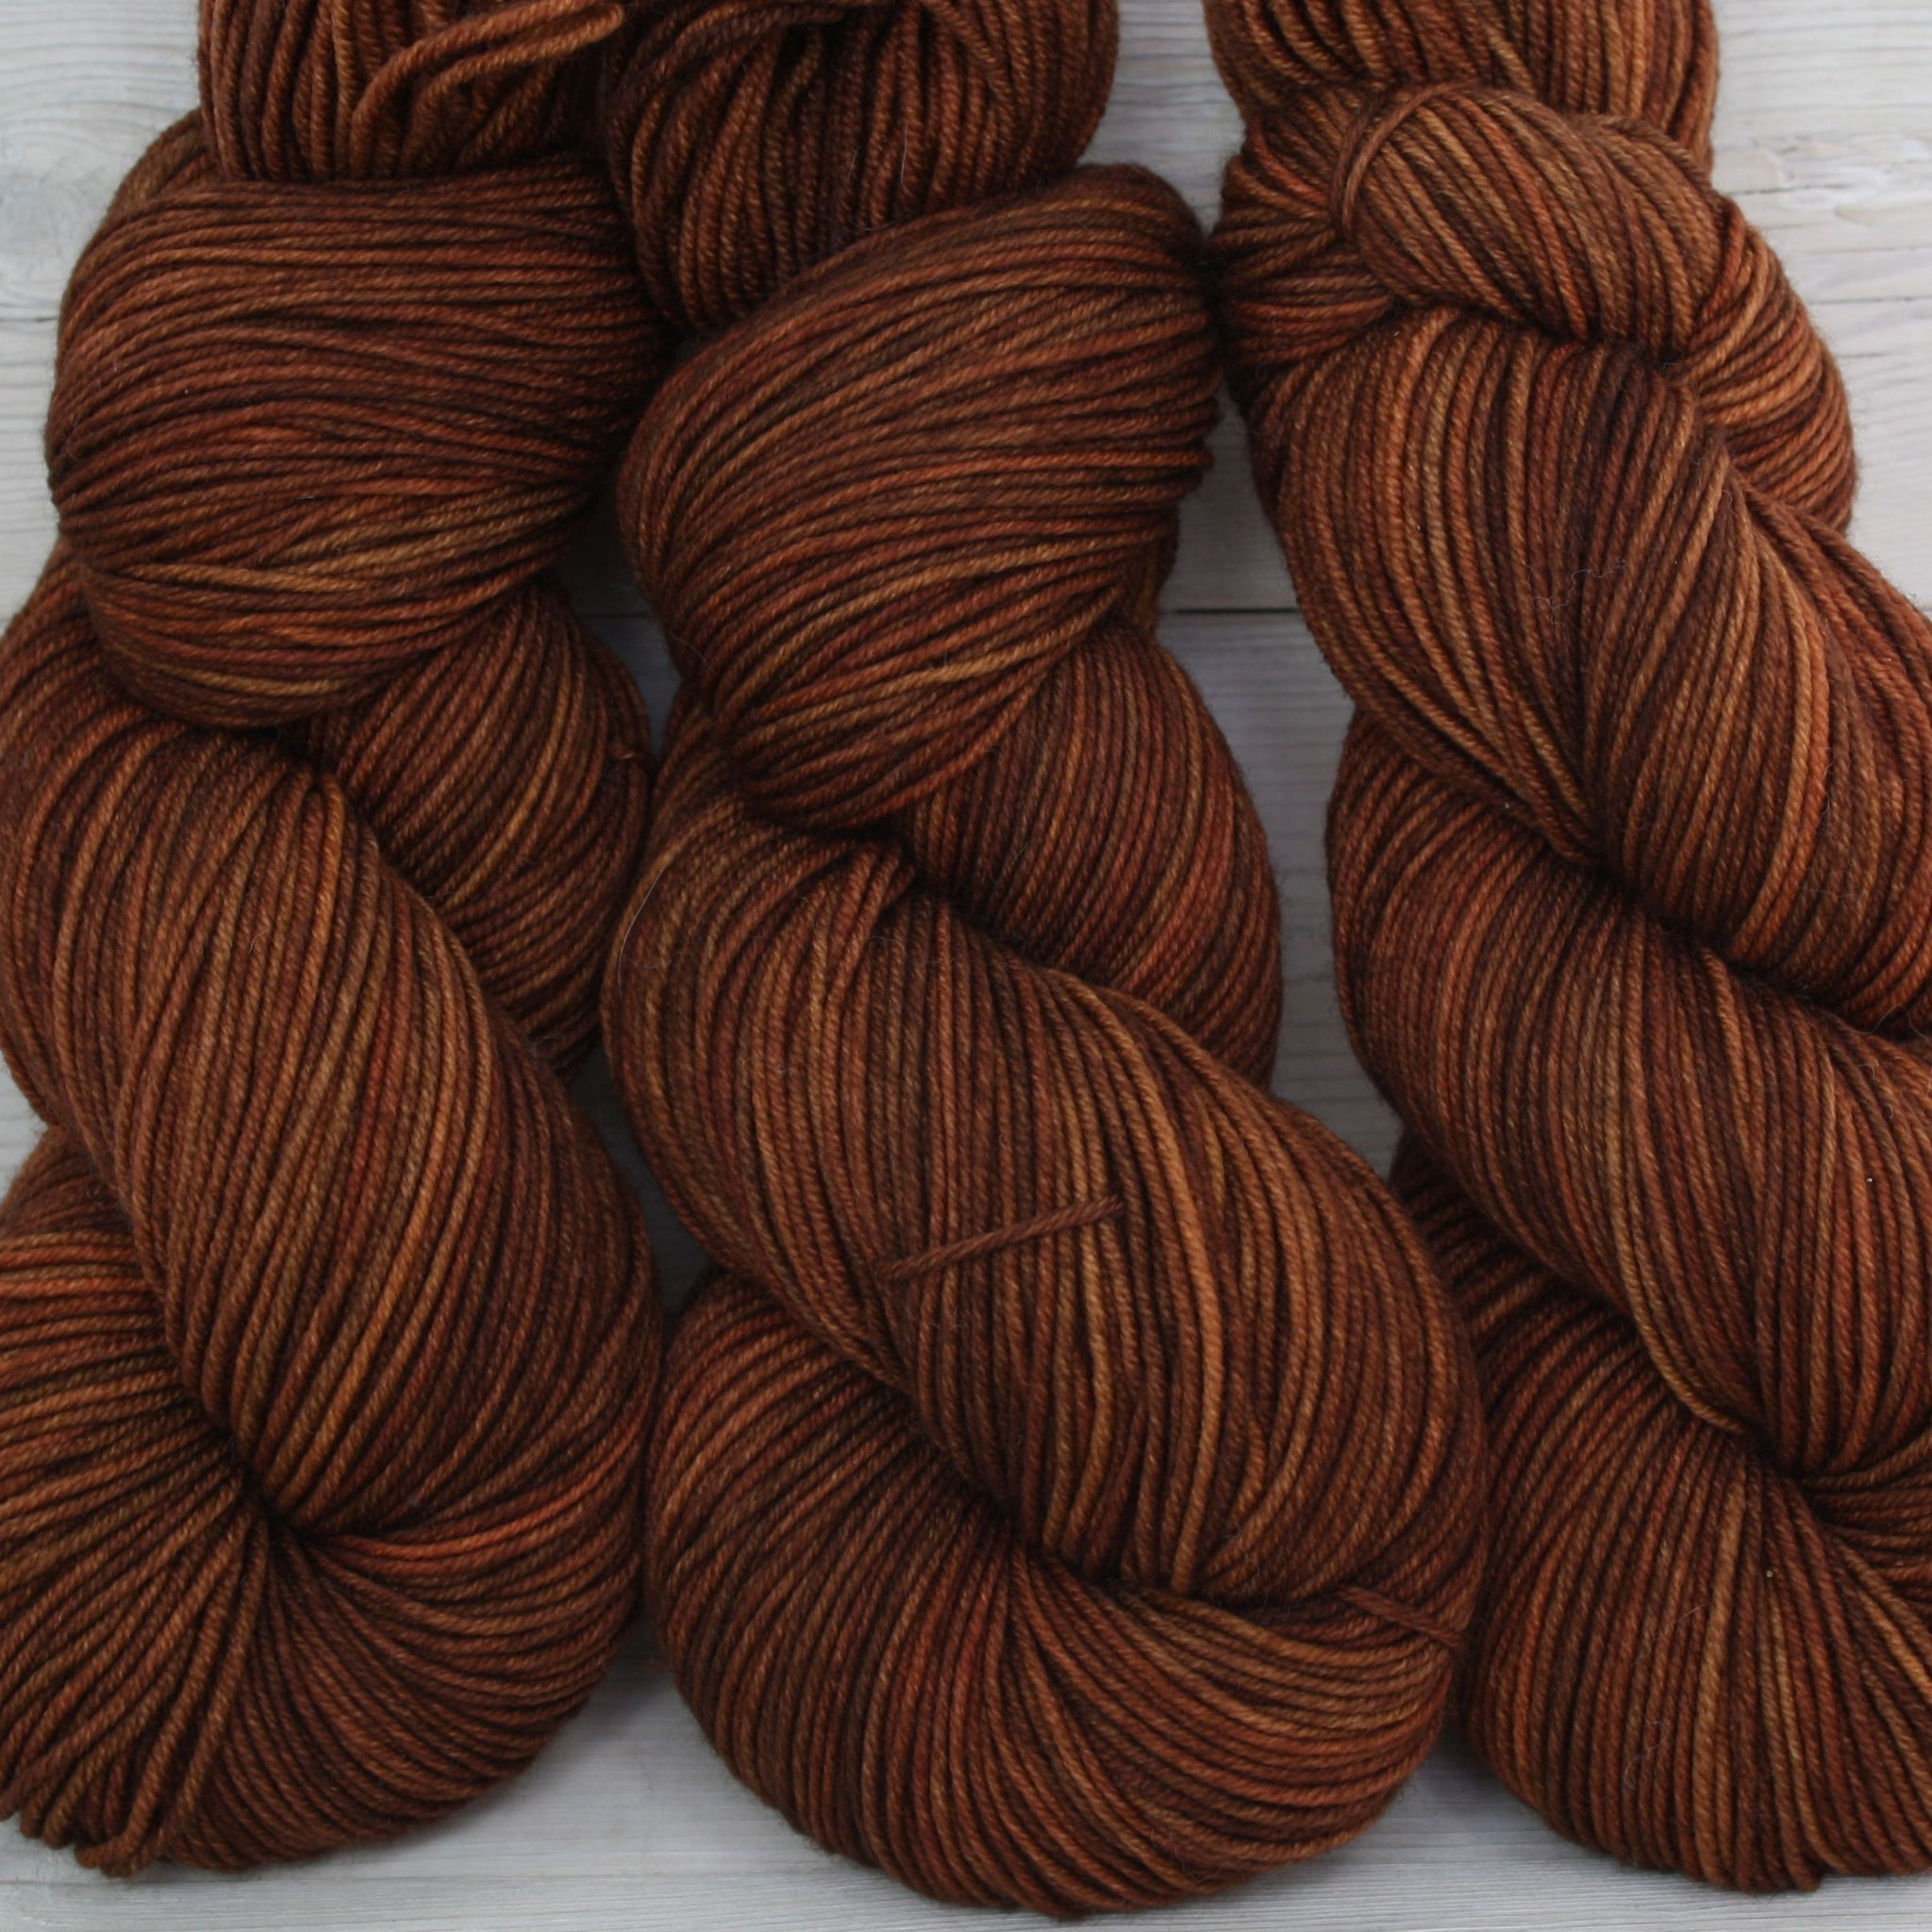 Colorway: Cinnamon | Dyed to Order Yarn